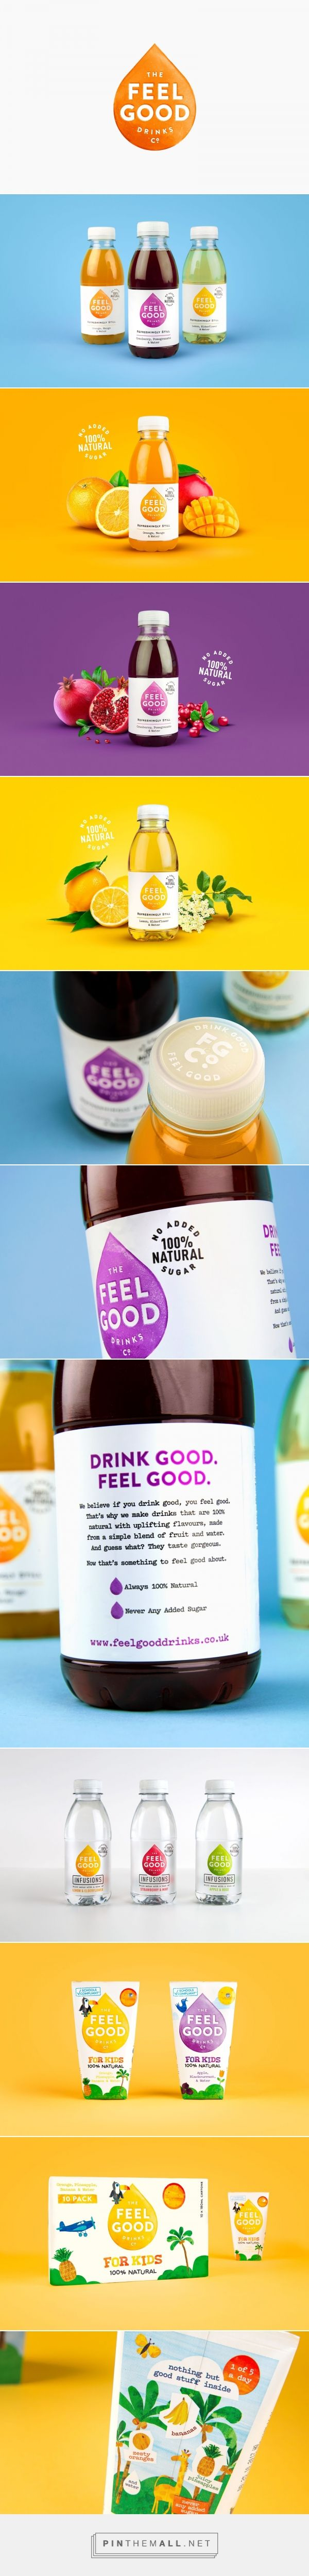 Feel Good drinks packaging design by Robot Food - http://www.packagingoftheworld.com/2017/10/feel-good.html